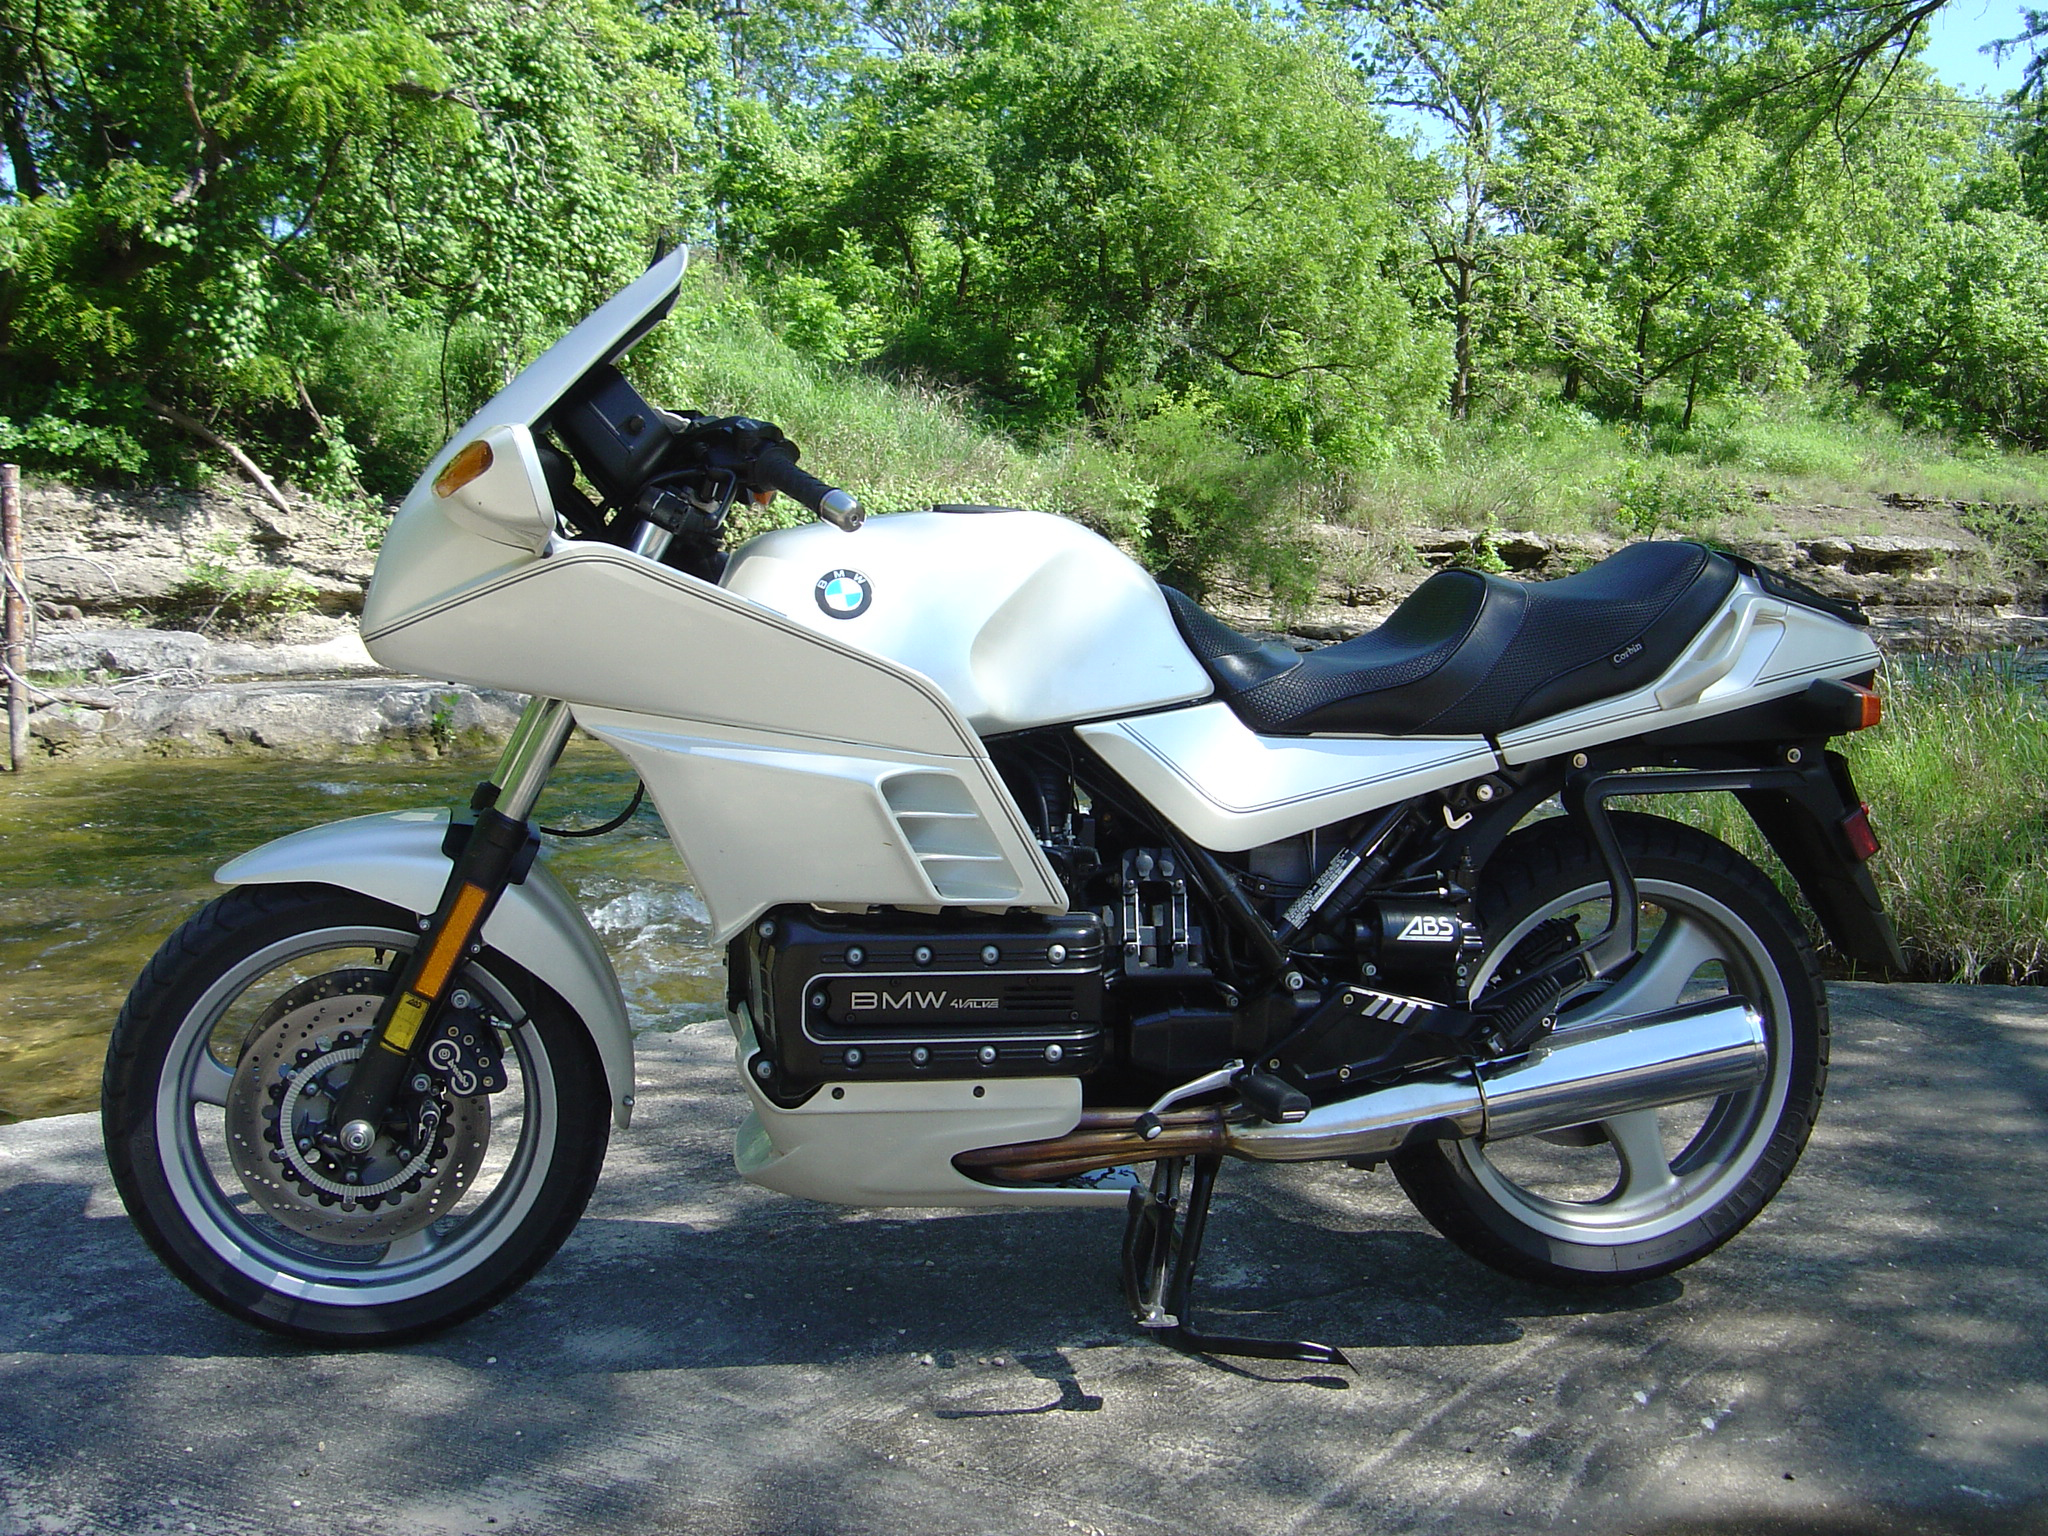 1991 BMW K100 Motorcycle